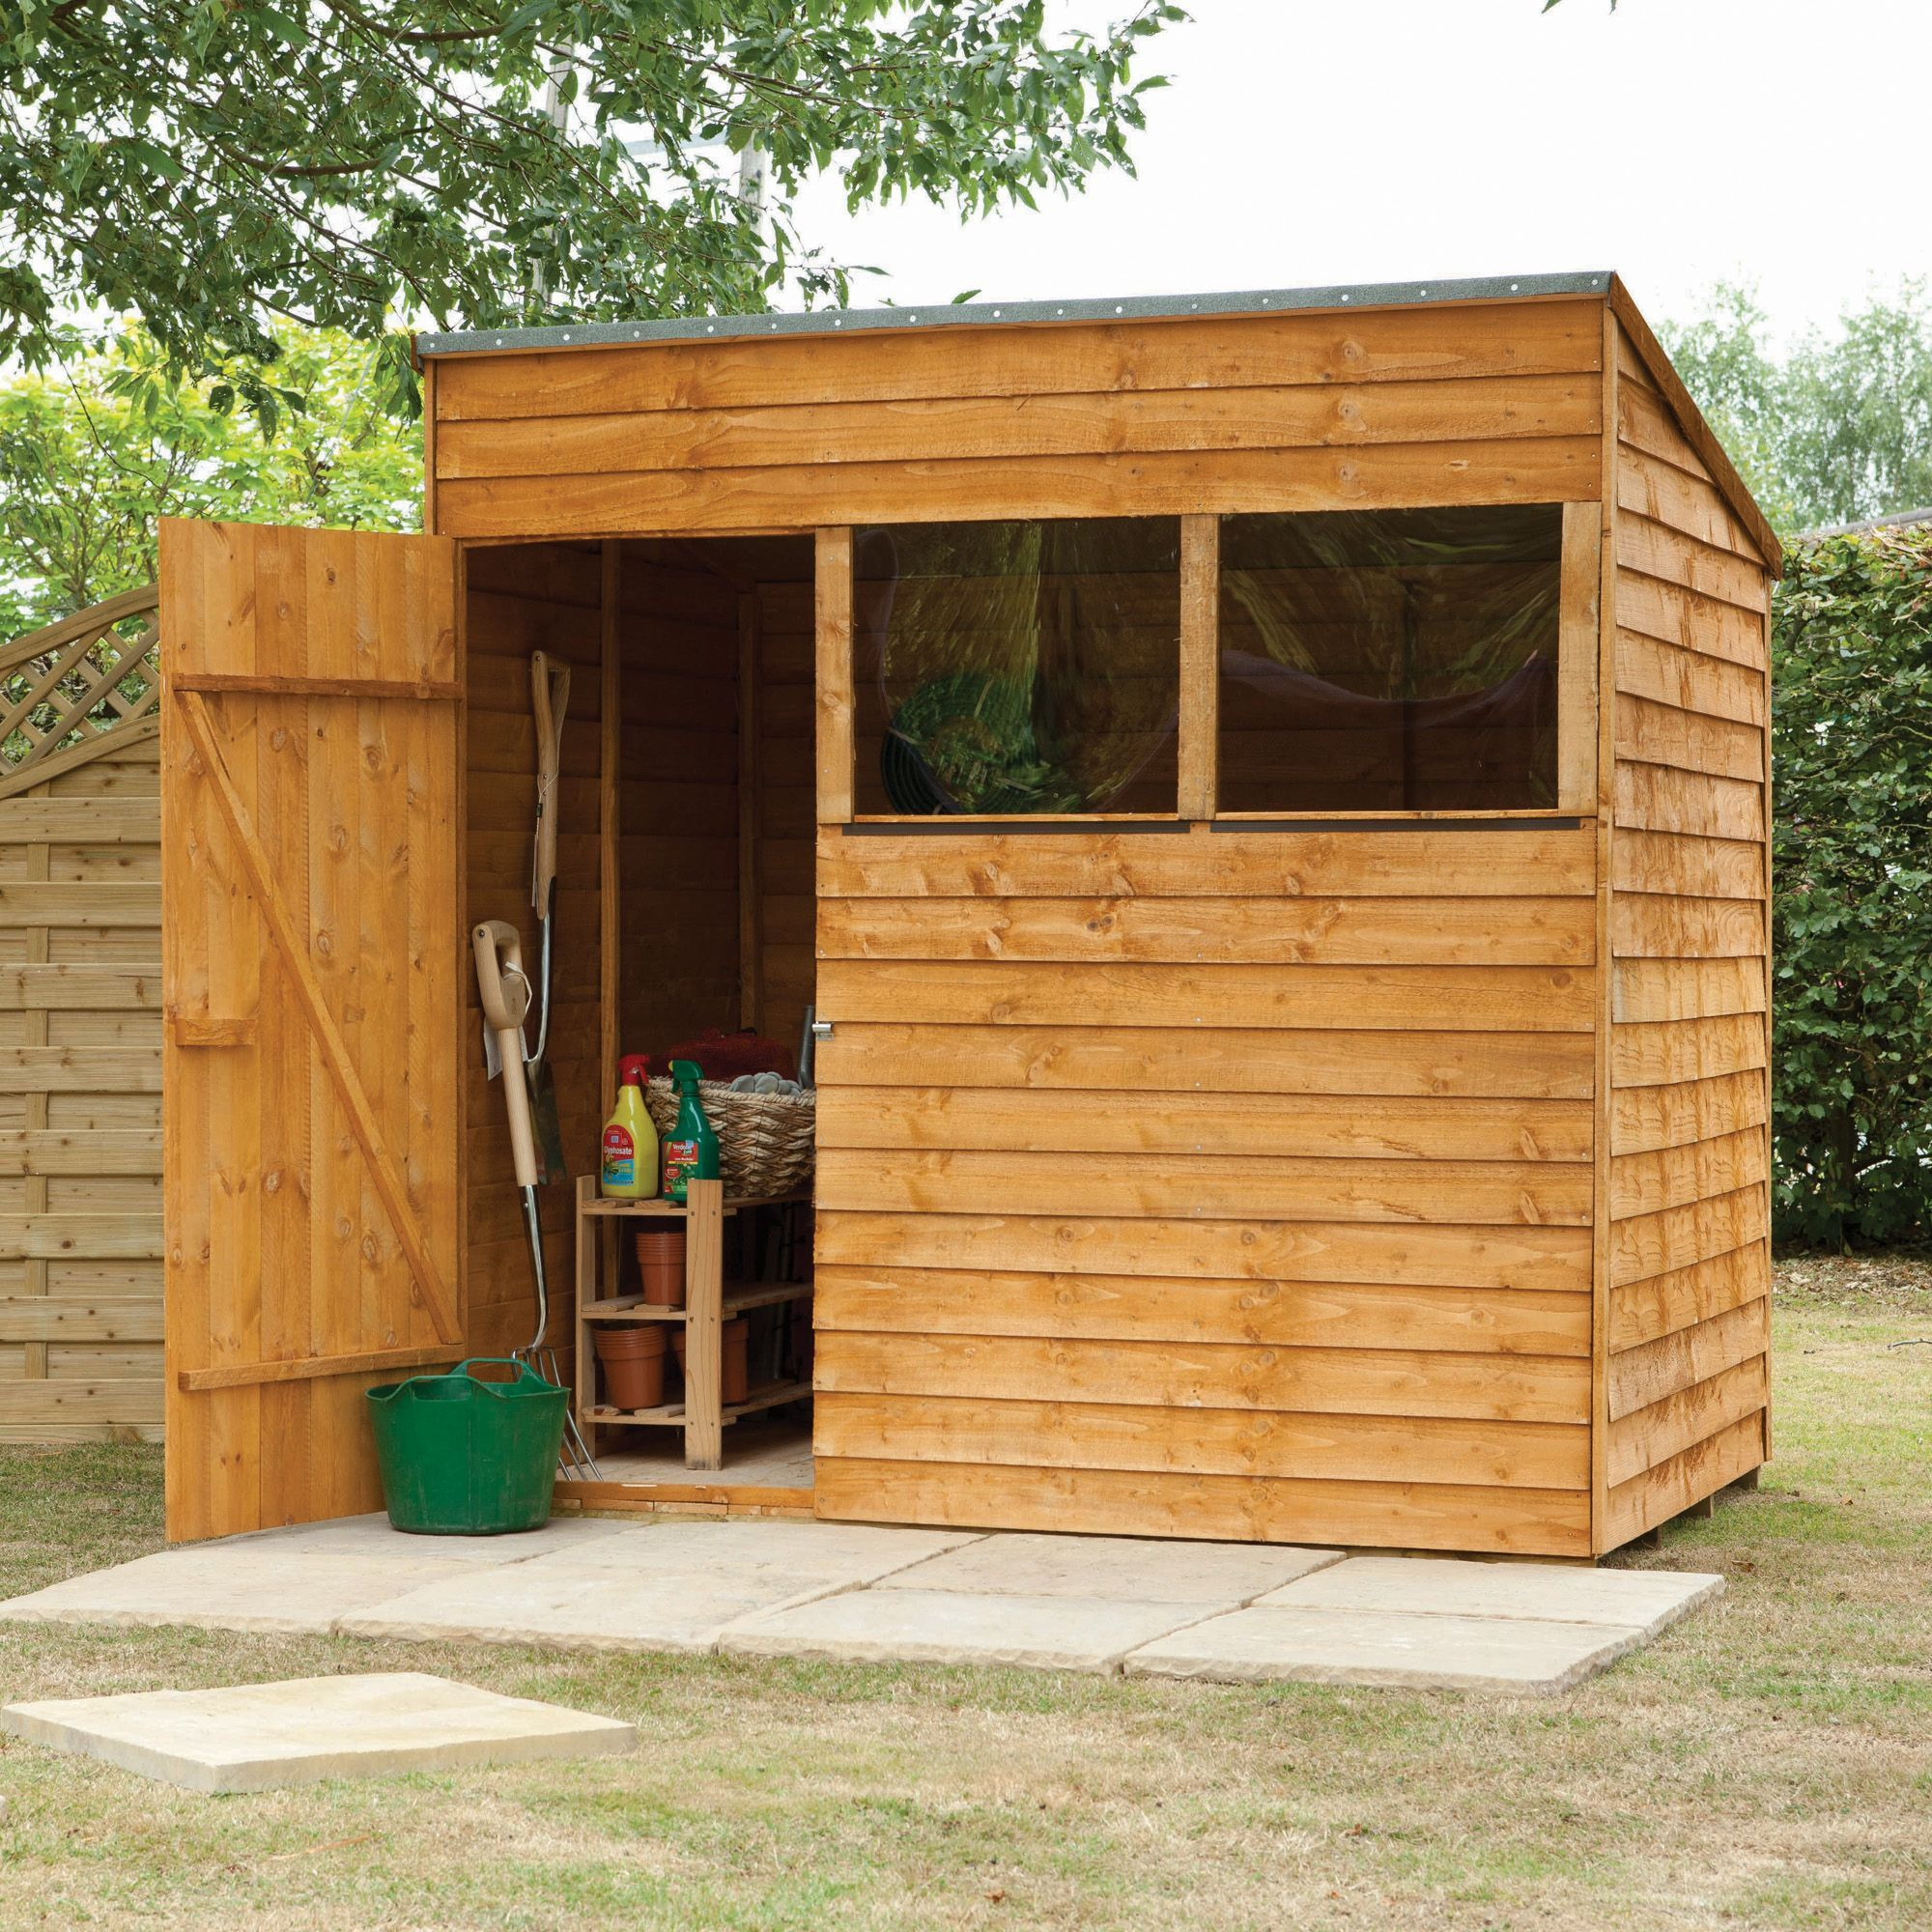 Garden Sheds 7x5 7x5 larchlap pent overlap wooden shed base included | garden ideas